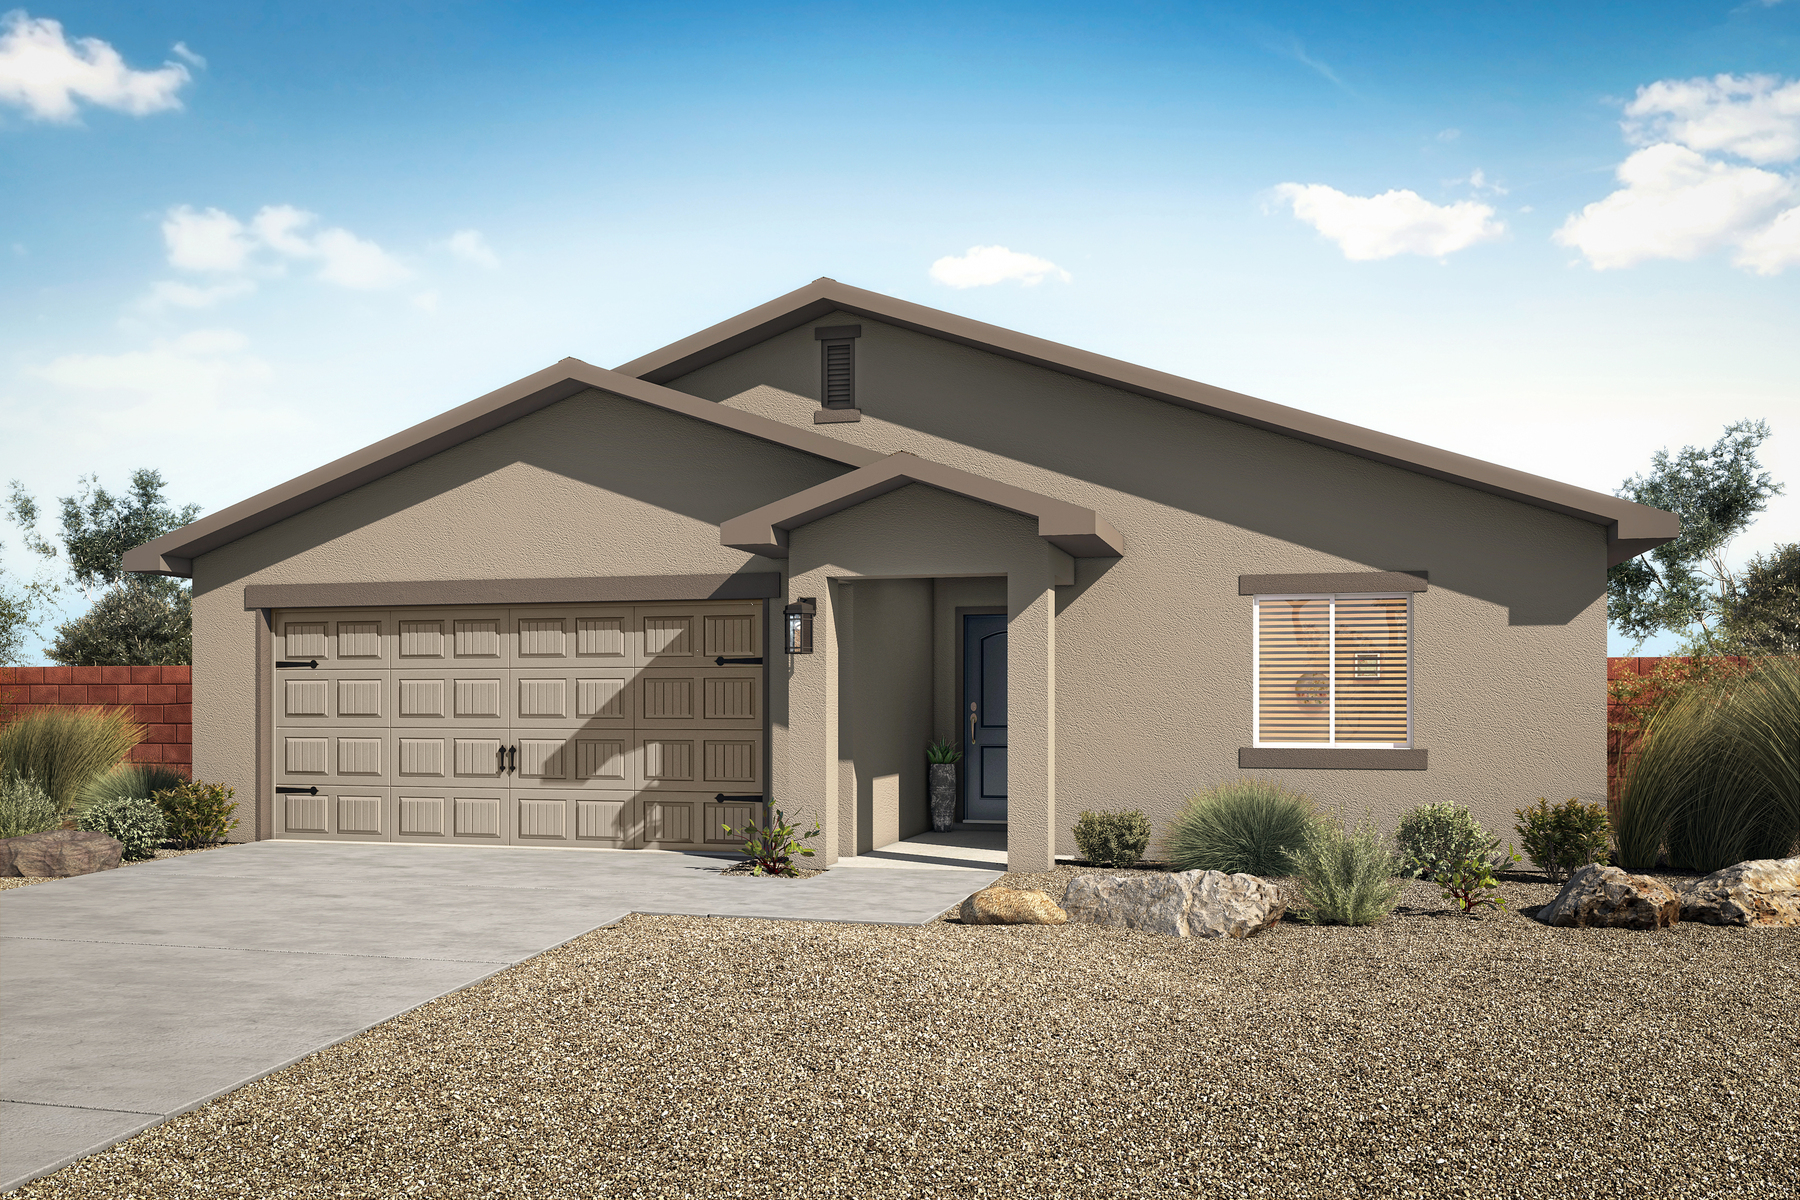 LGI Homes offers new, single family homes and townhomes with three and four bedrooms in Albuquerque.